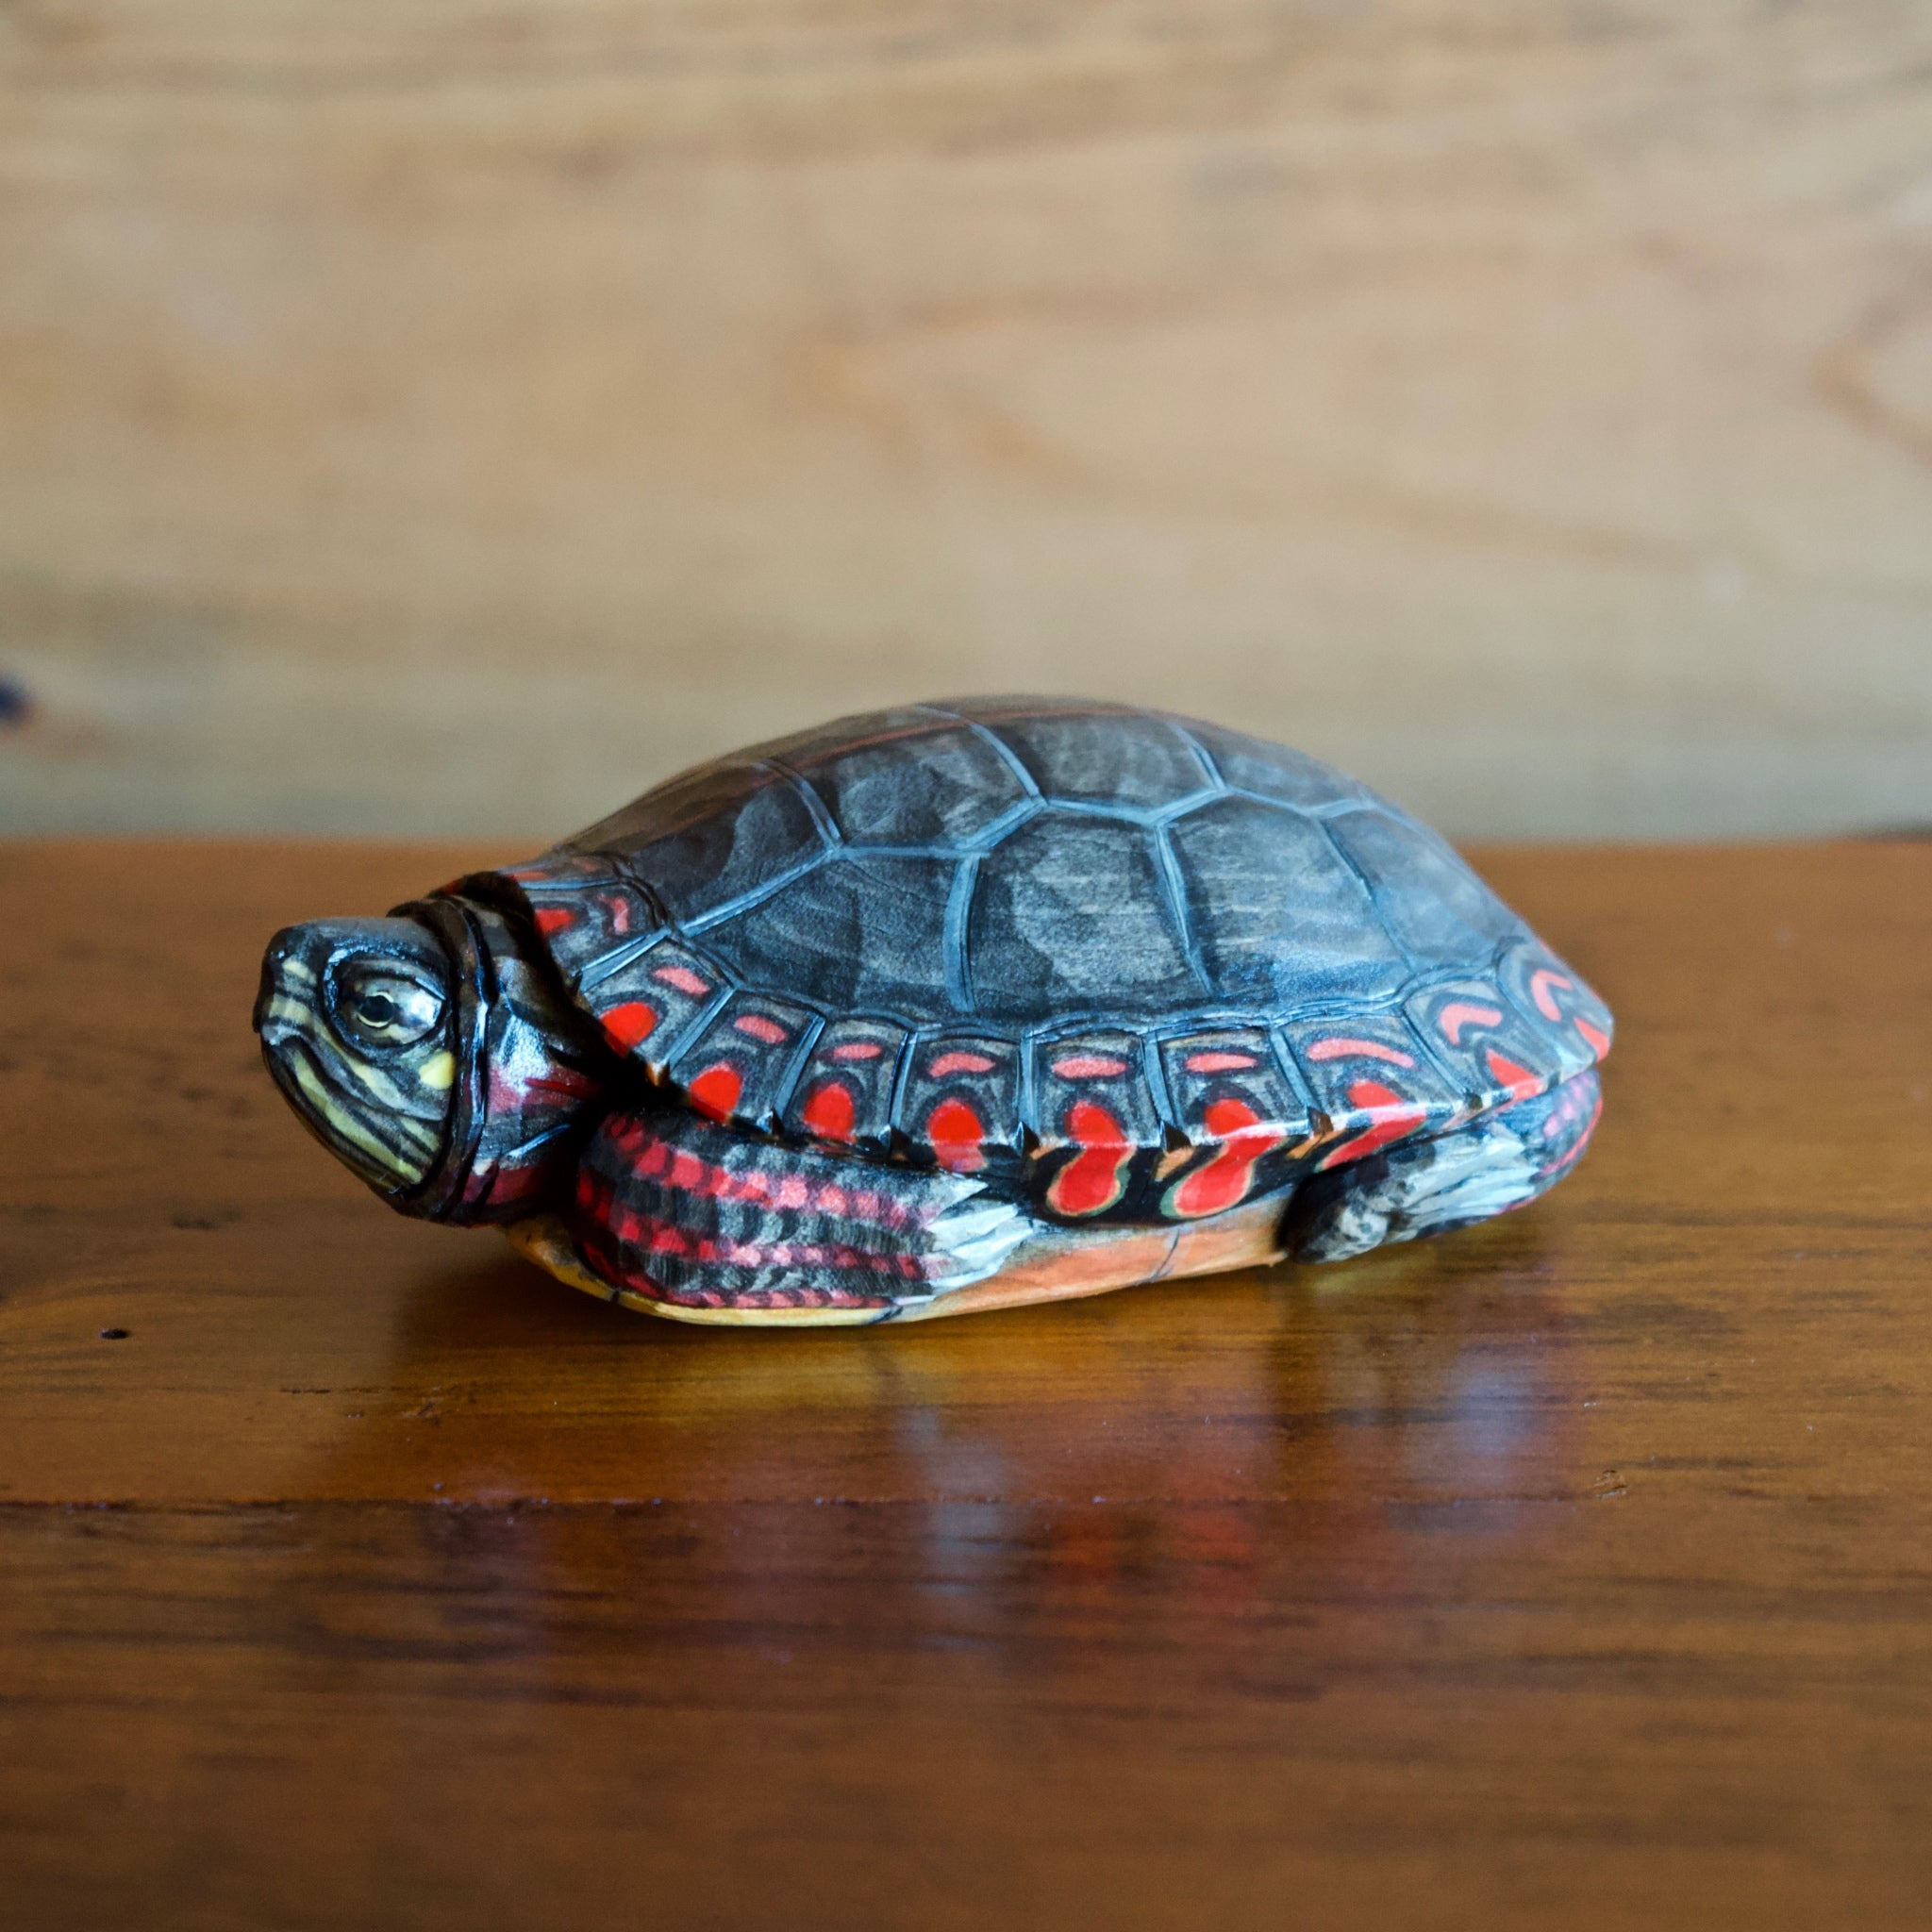 Eastern Painted Turtle Wood Carving by Allen Aardsma